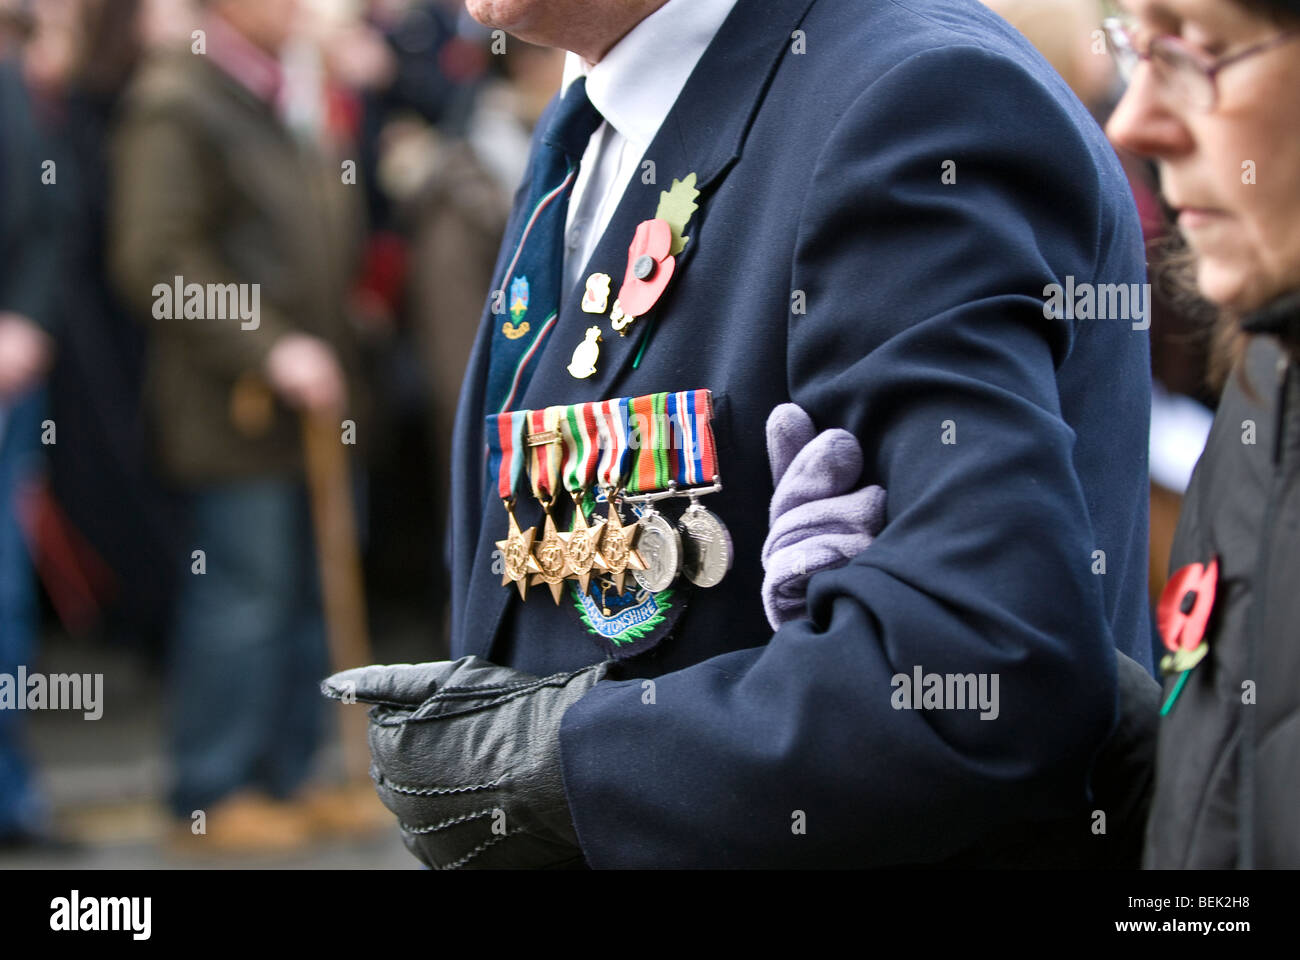 Veteran soldier parades proudly wearing medals presented for armed service duties during conflict & war. Stratford - Stock Image